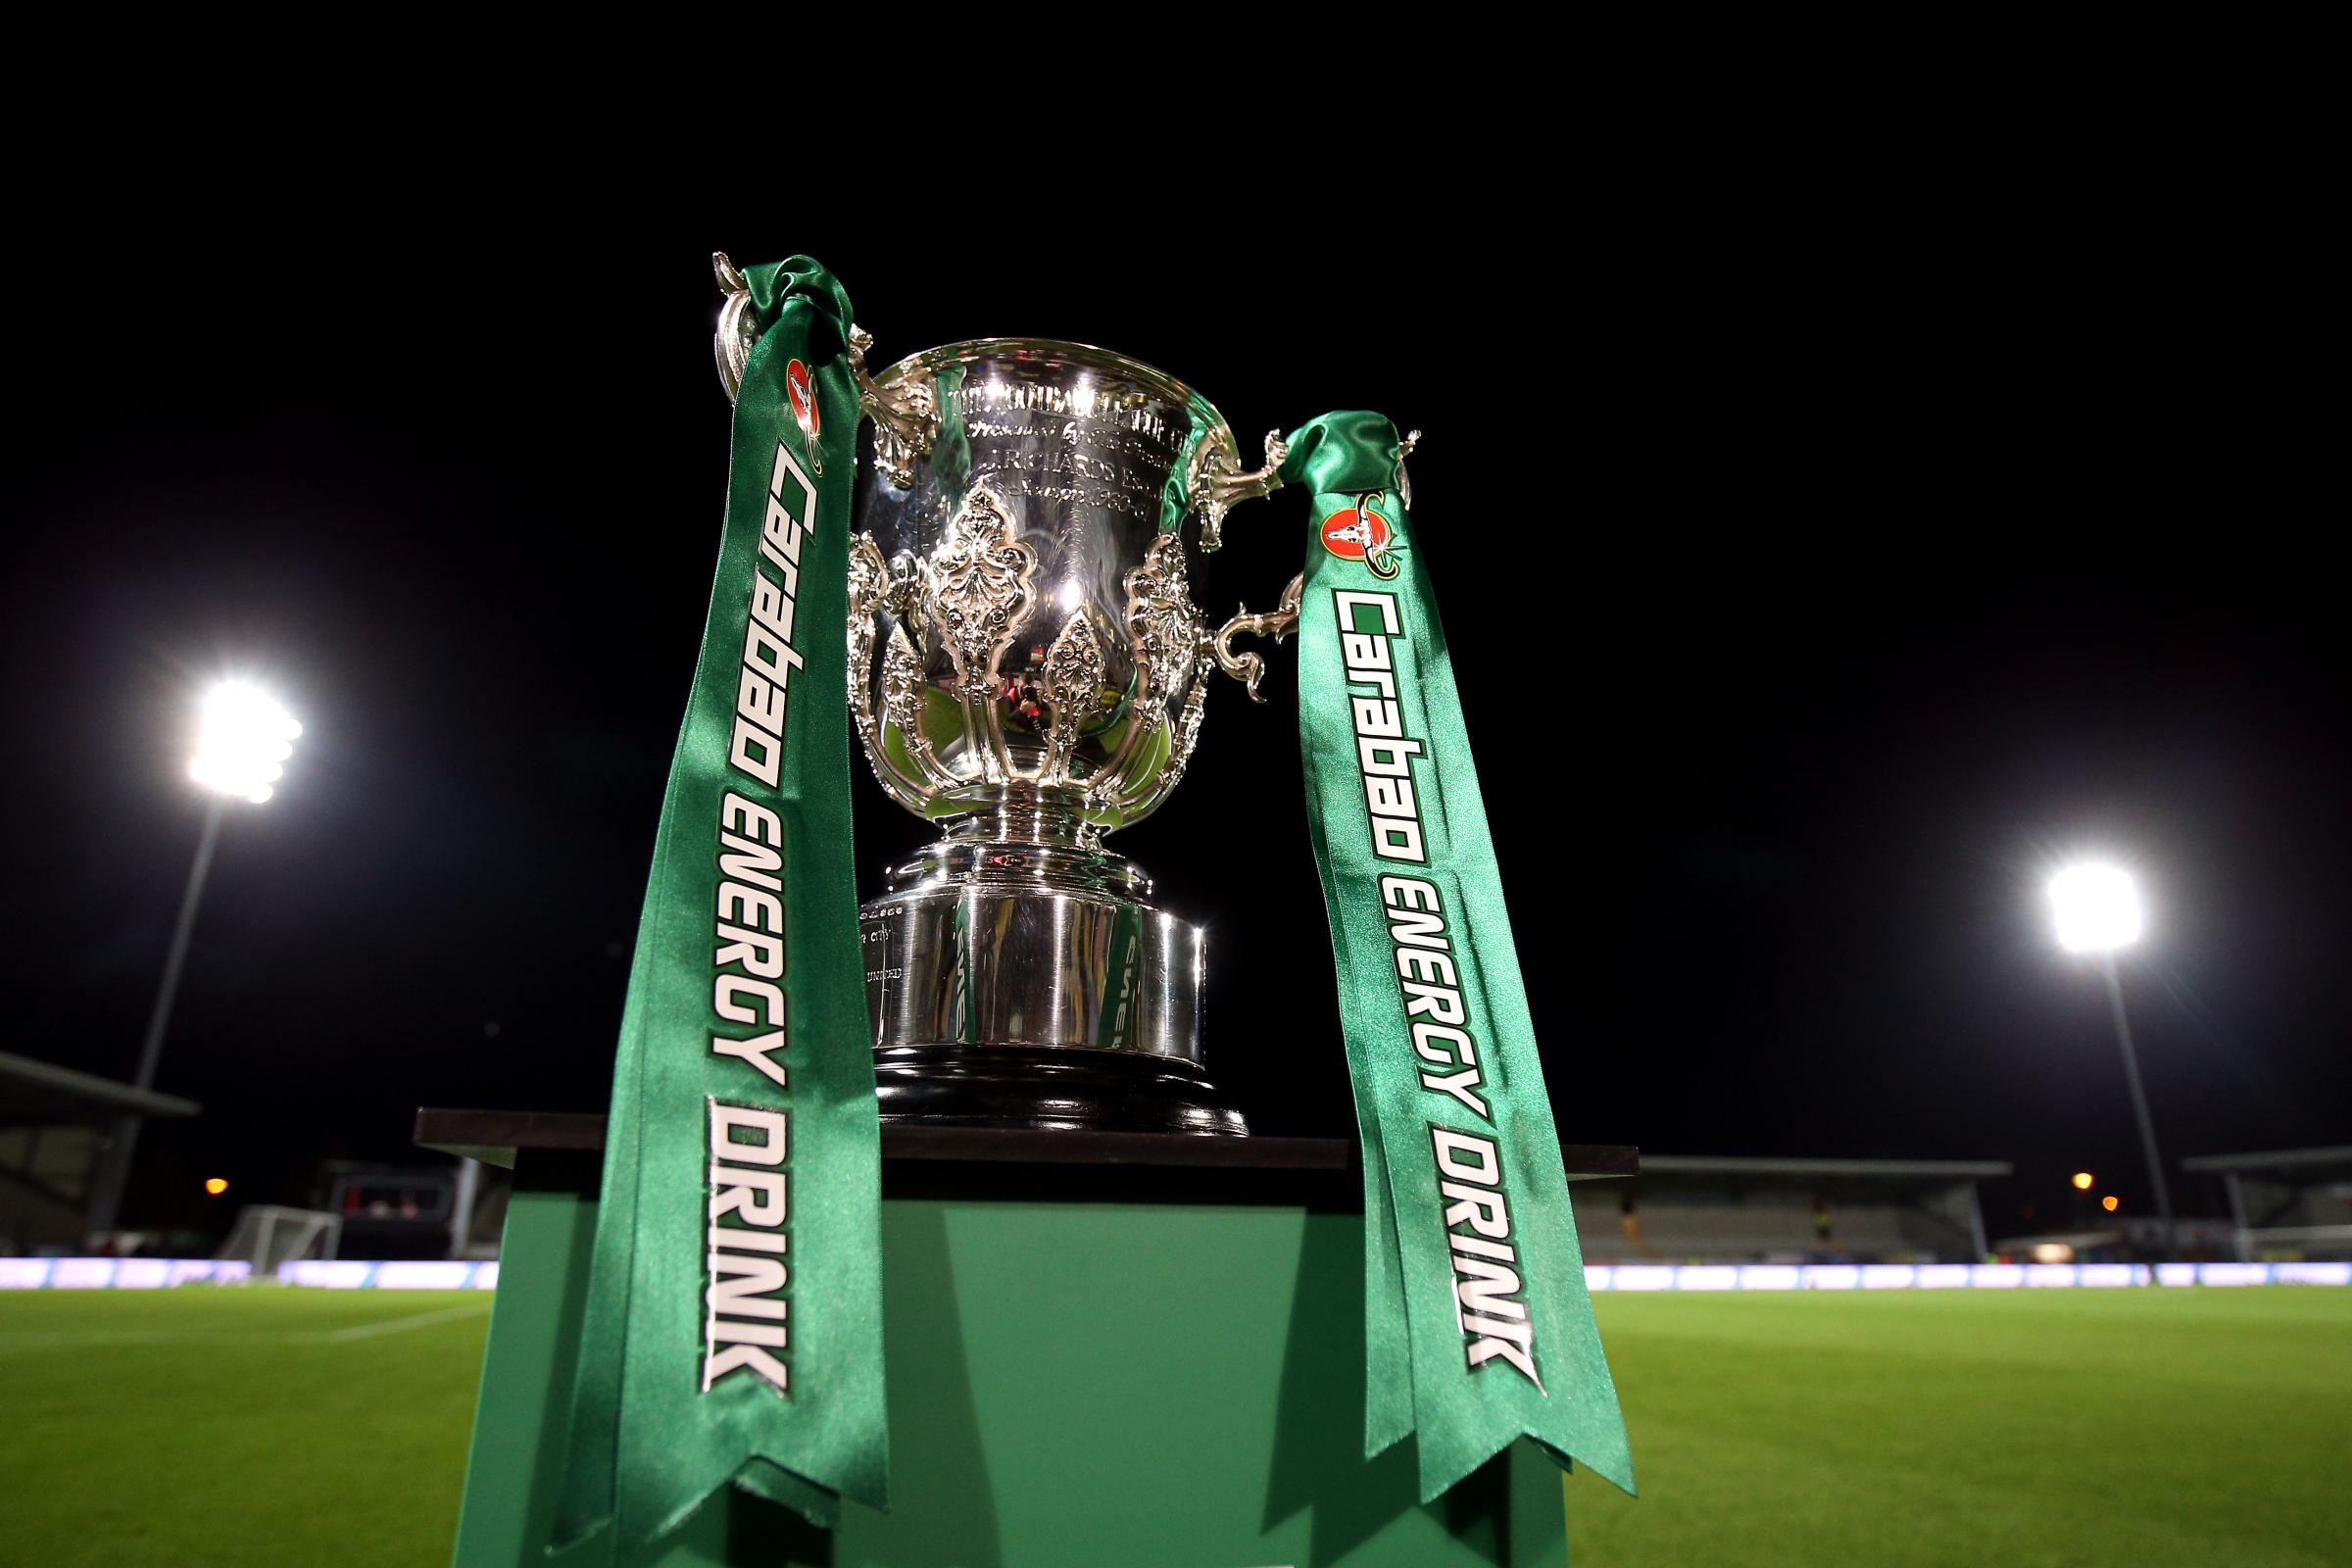 Bury's Carabao Cup first round opponents confirmed